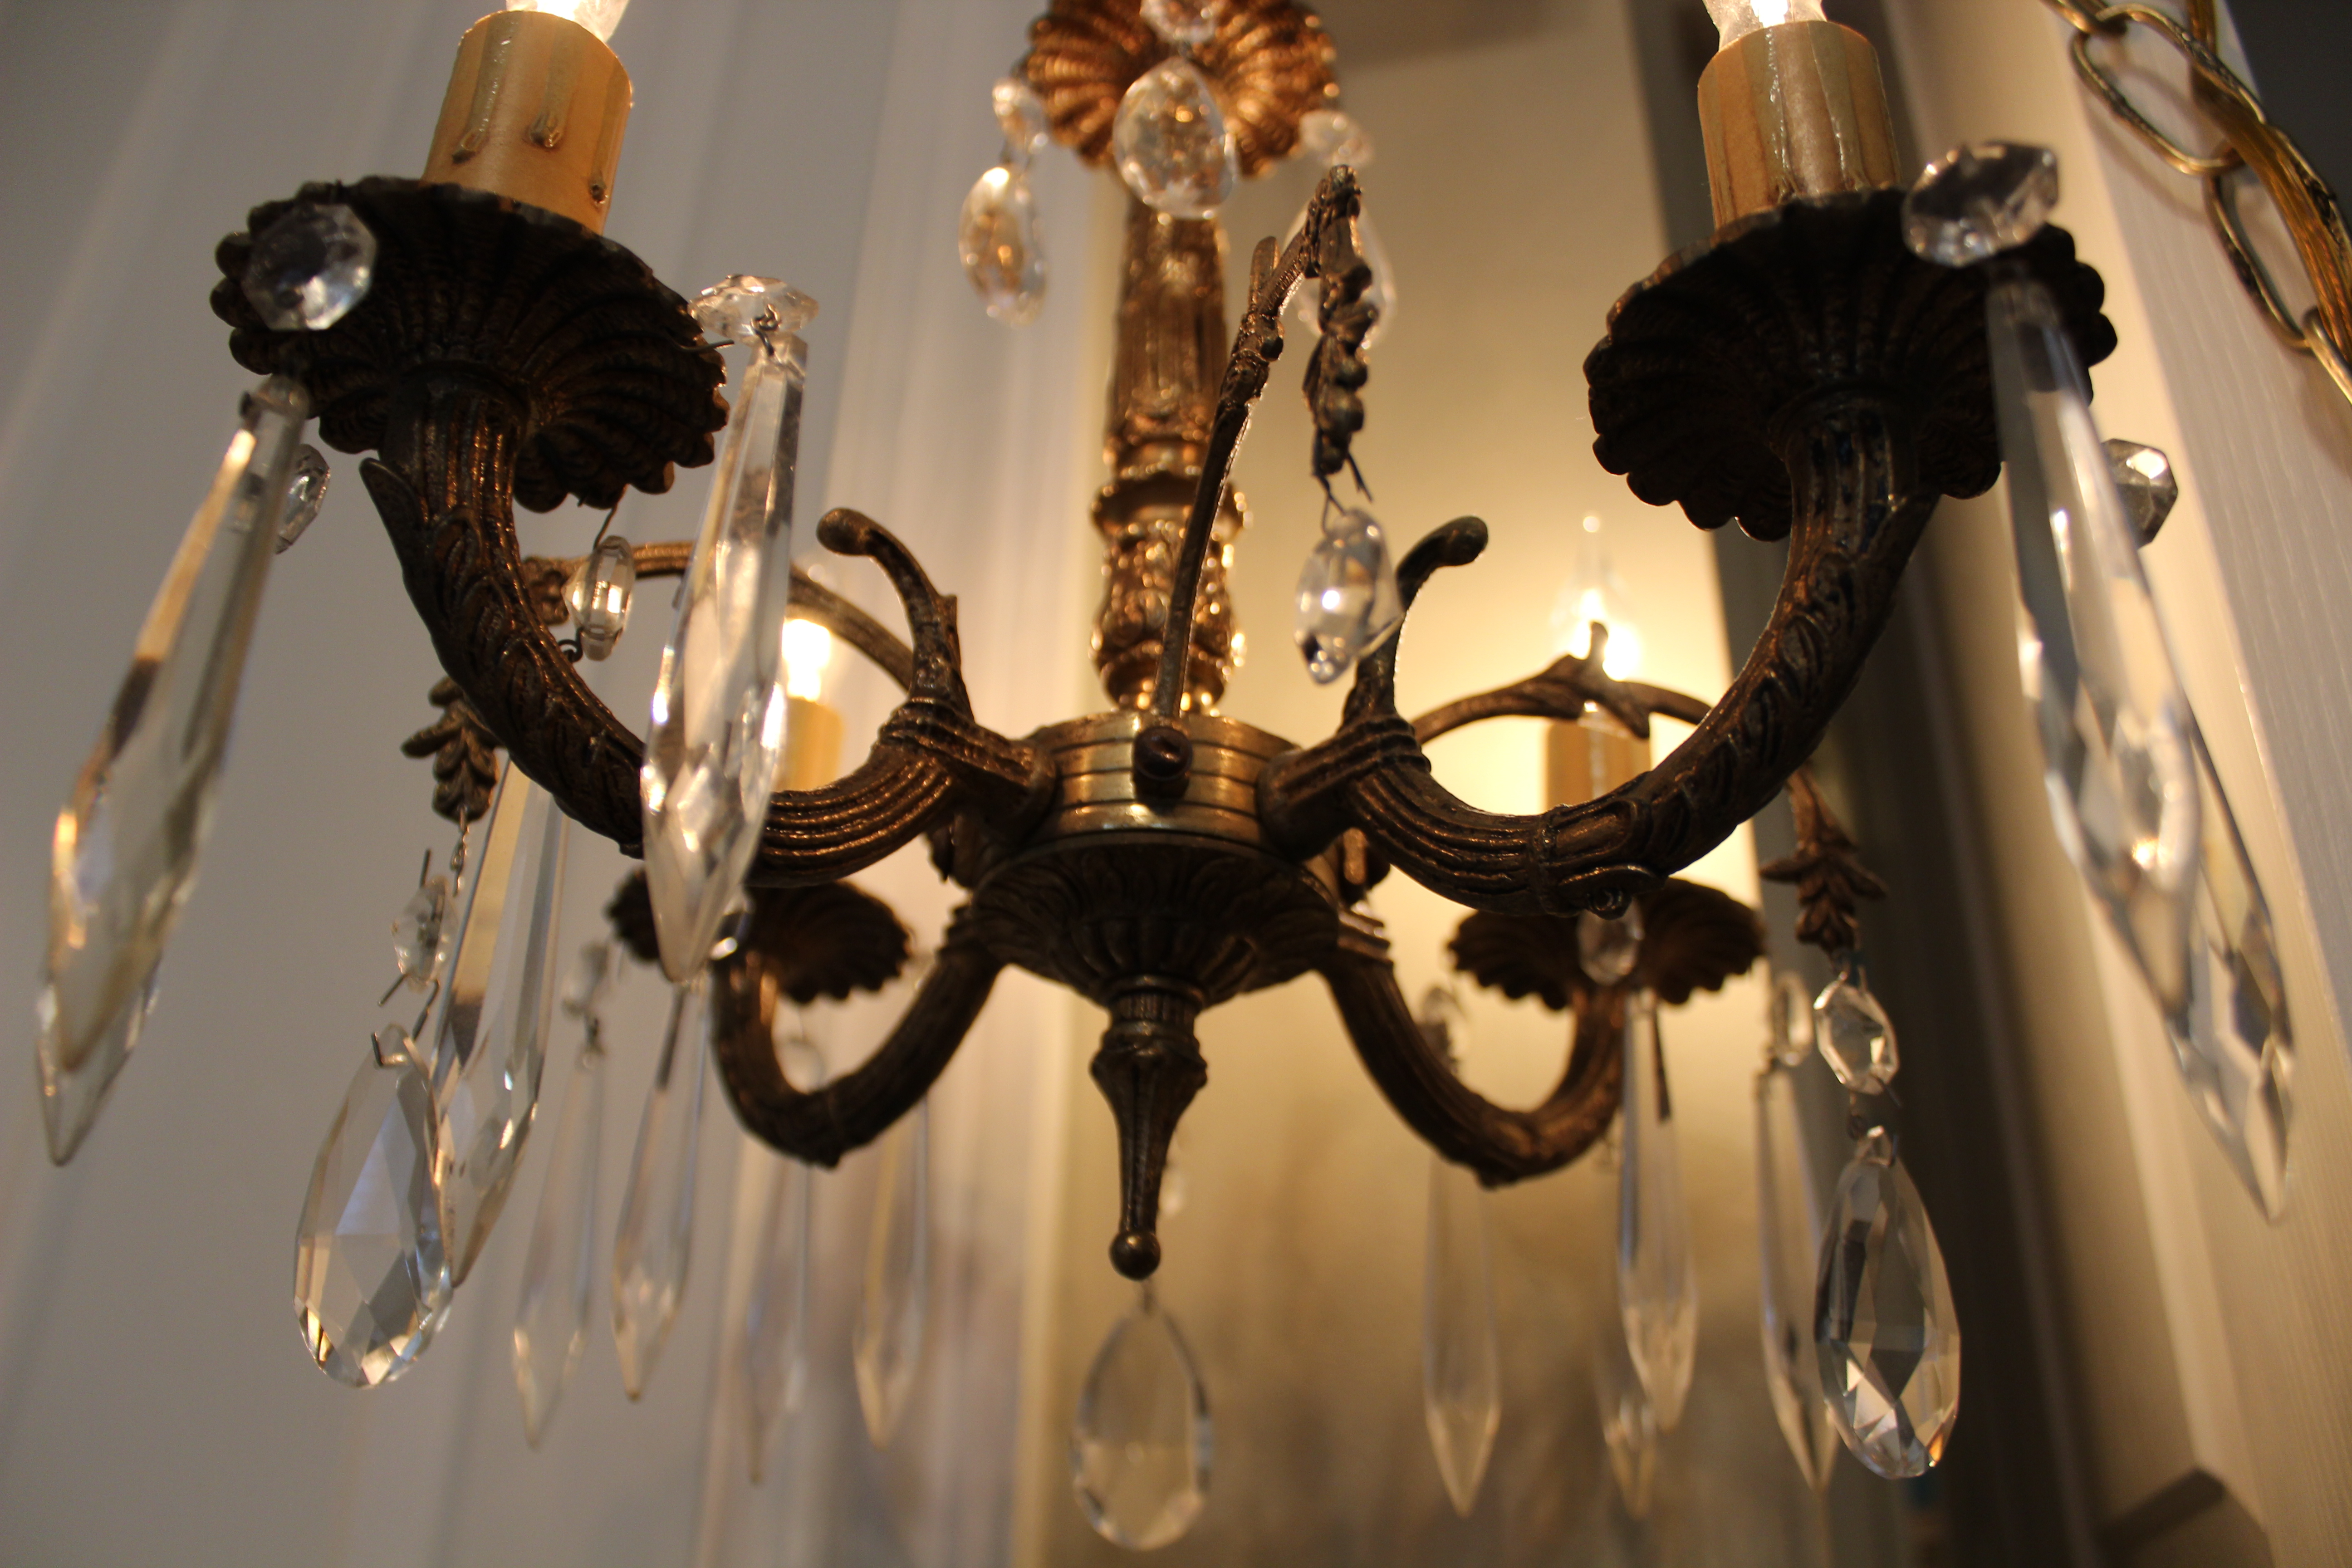 Chandelier purchase on ebay a cautionary tale dells daily dish